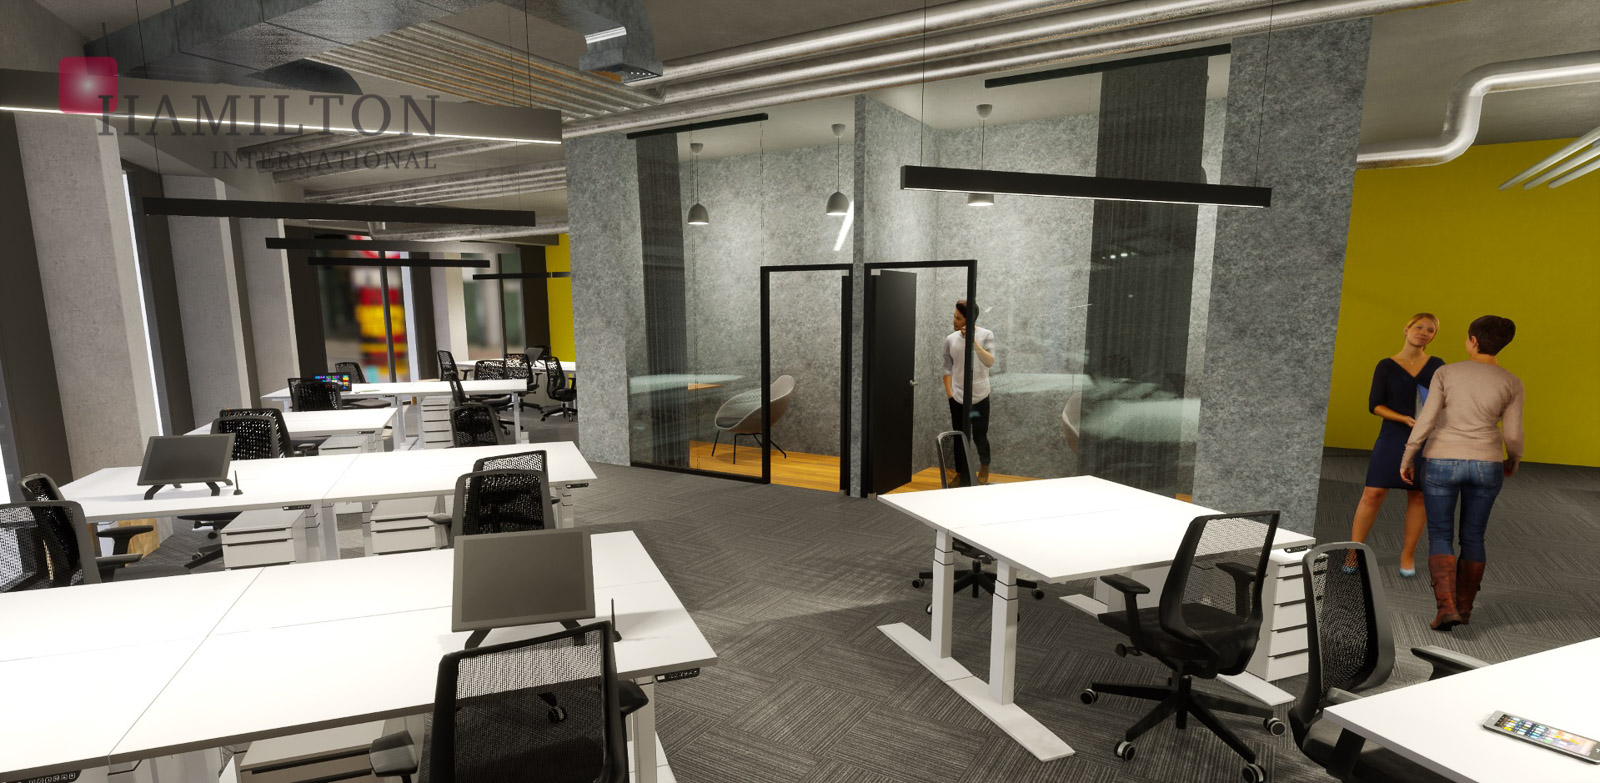 CitySpace Beethovena Warsaw serviced office building photo